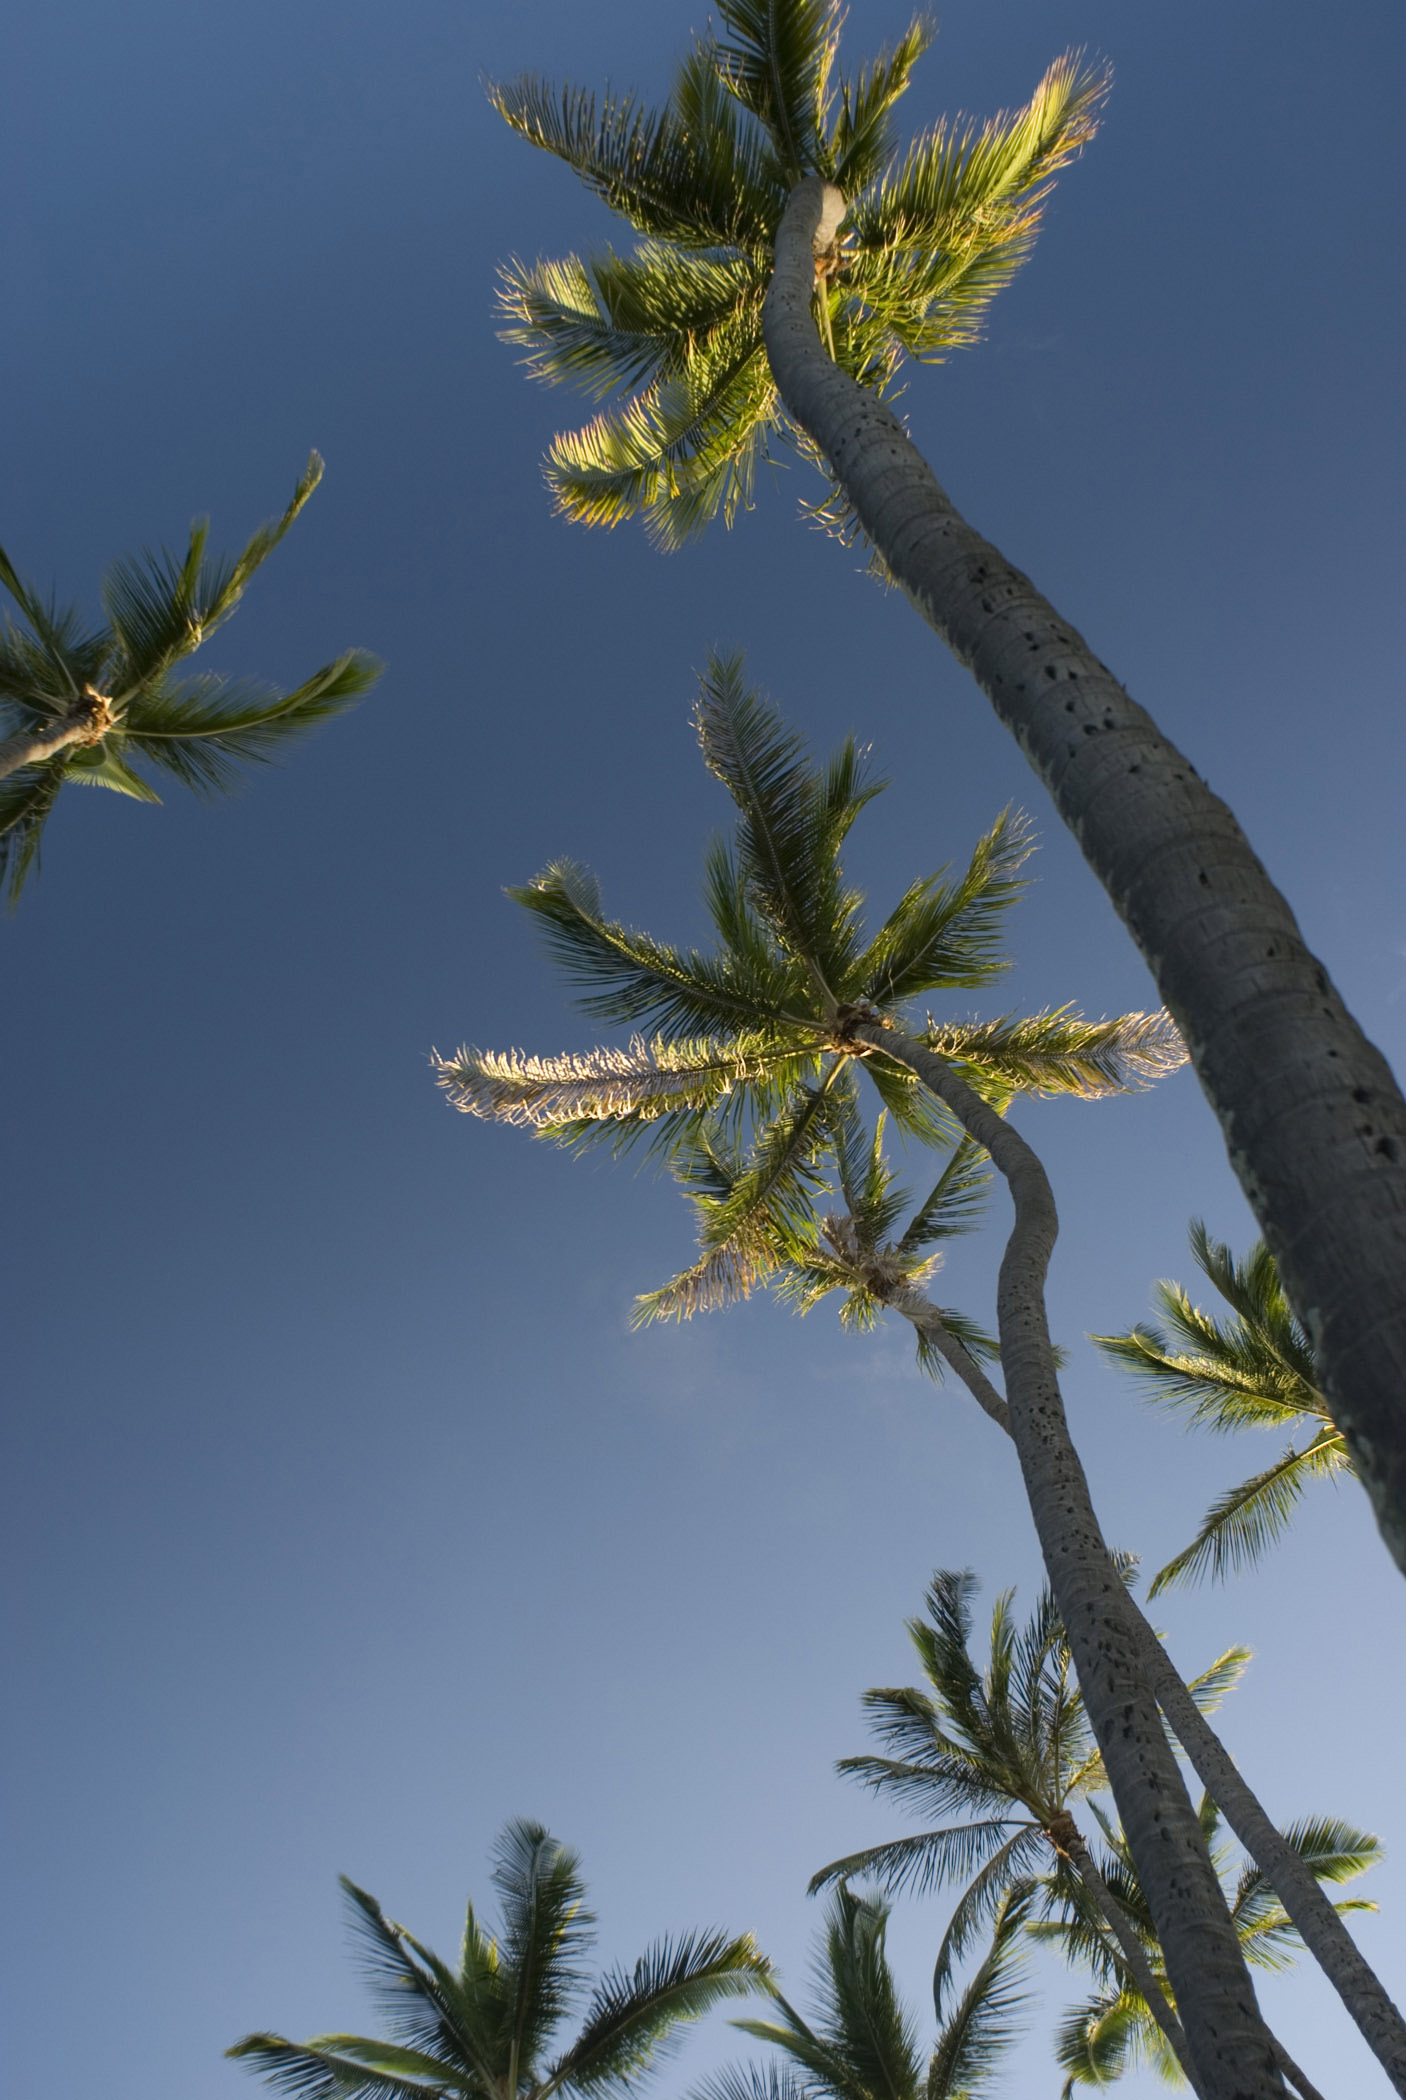 Plenty Tall Long Palm Trees in Worms Eye View. Isolated on Blue Sky Background.